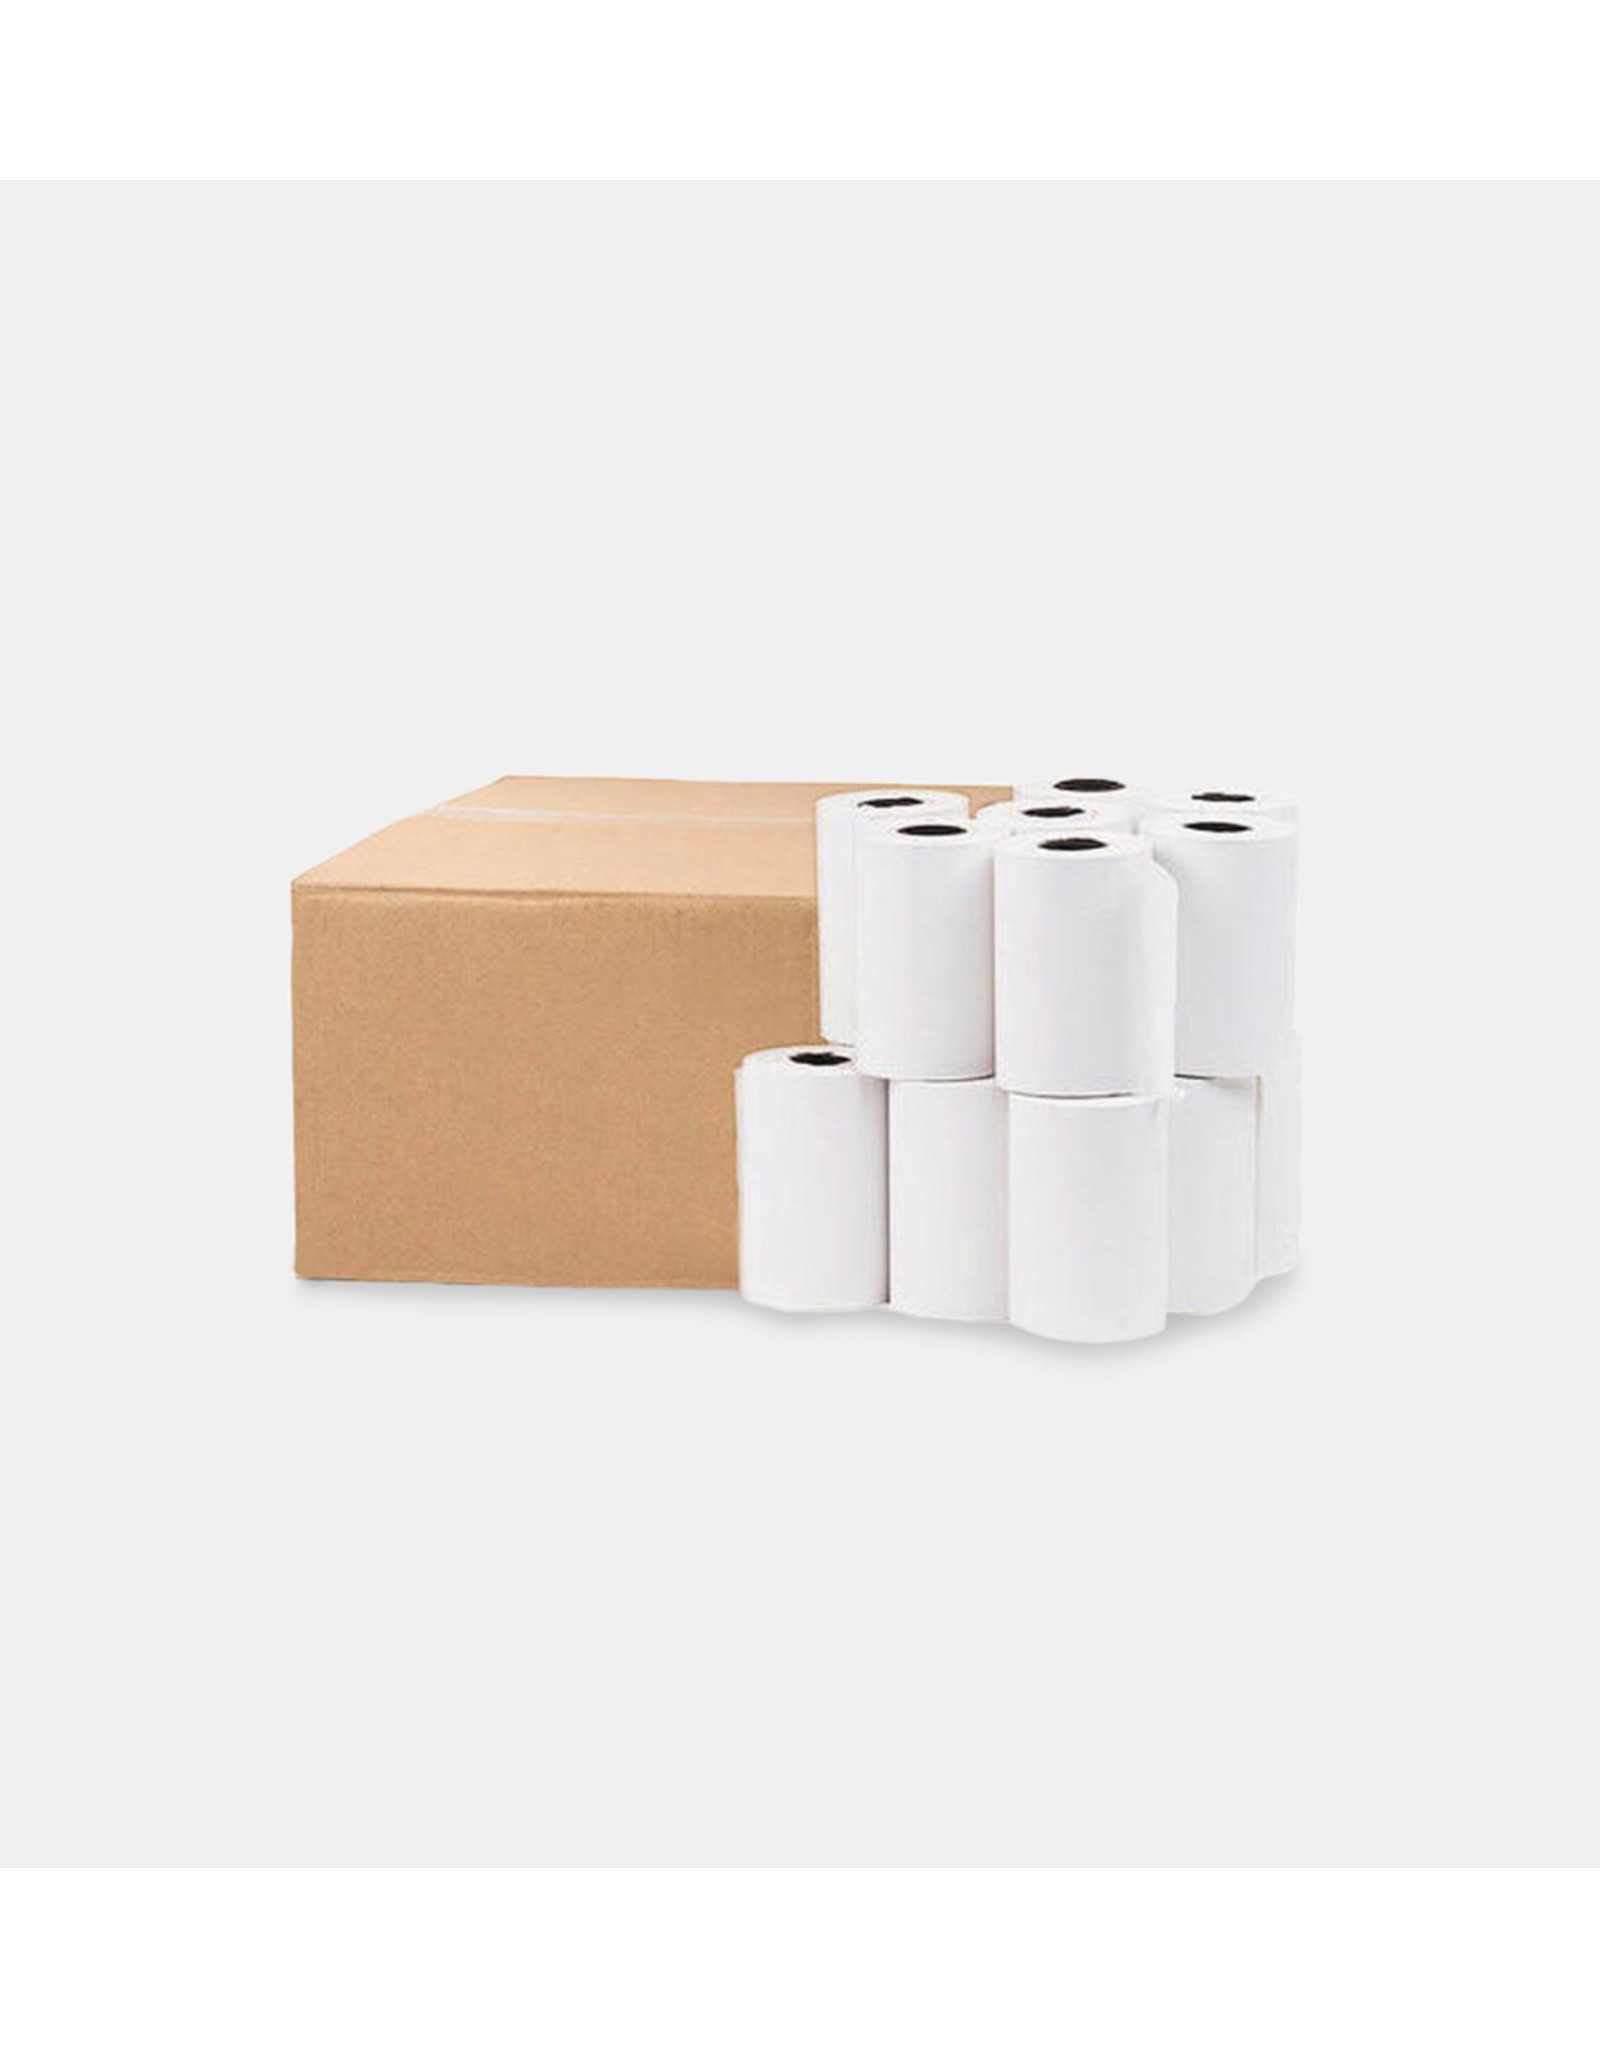 Calibor Bundle - 3 Boxes of Thermal Receipt Paper